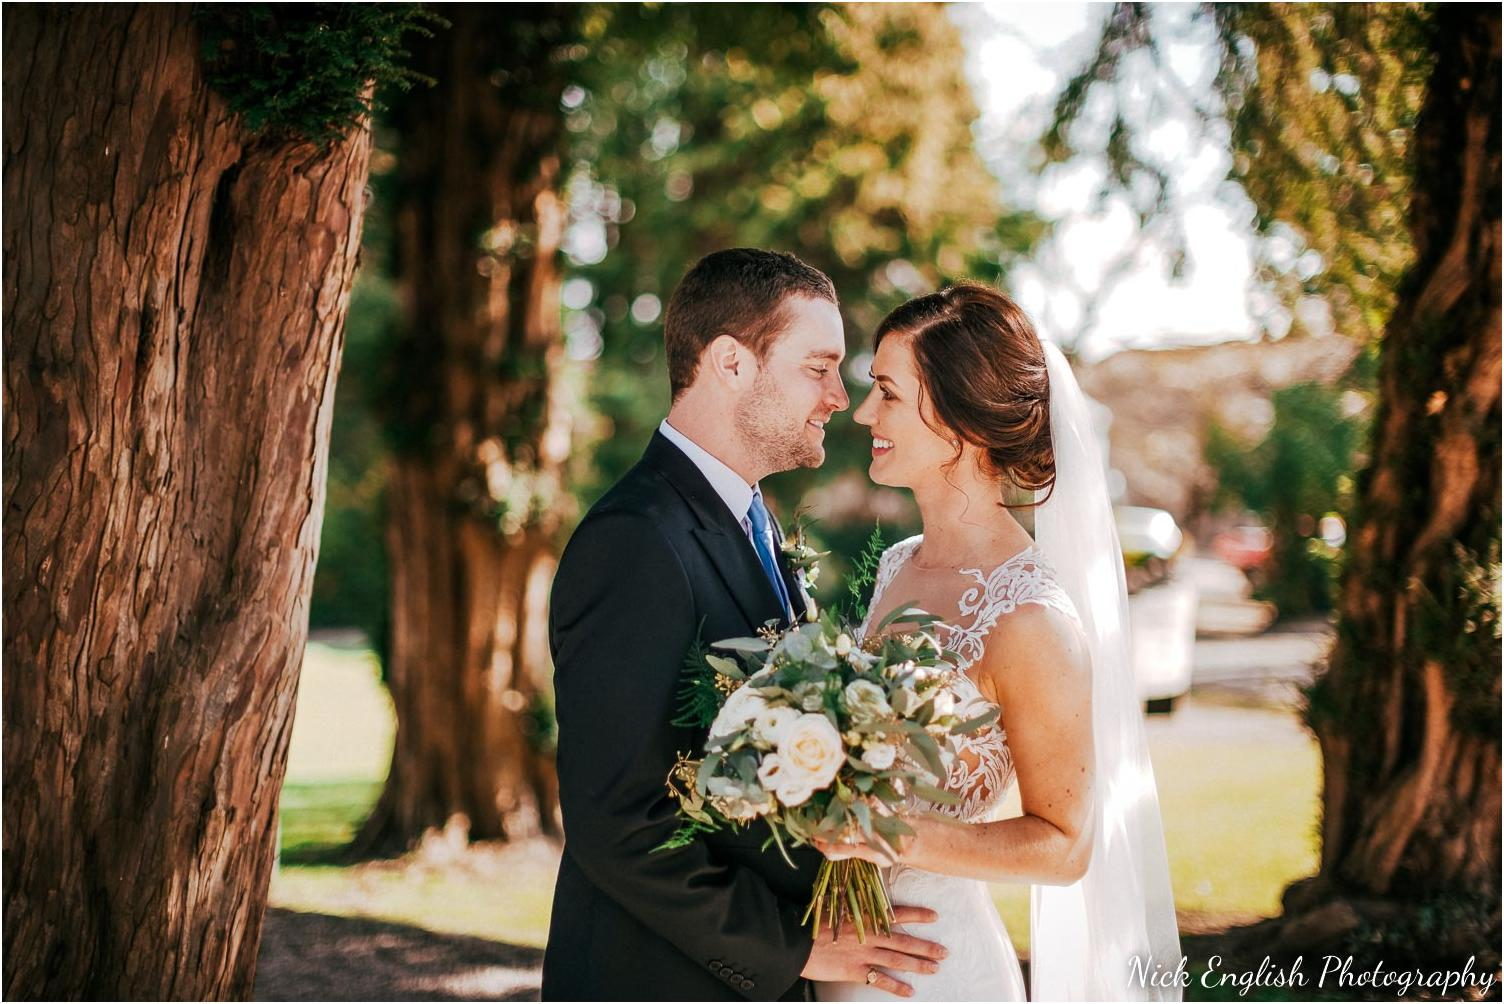 Mitton_Hall_Wedding_Photographer-93.jpg